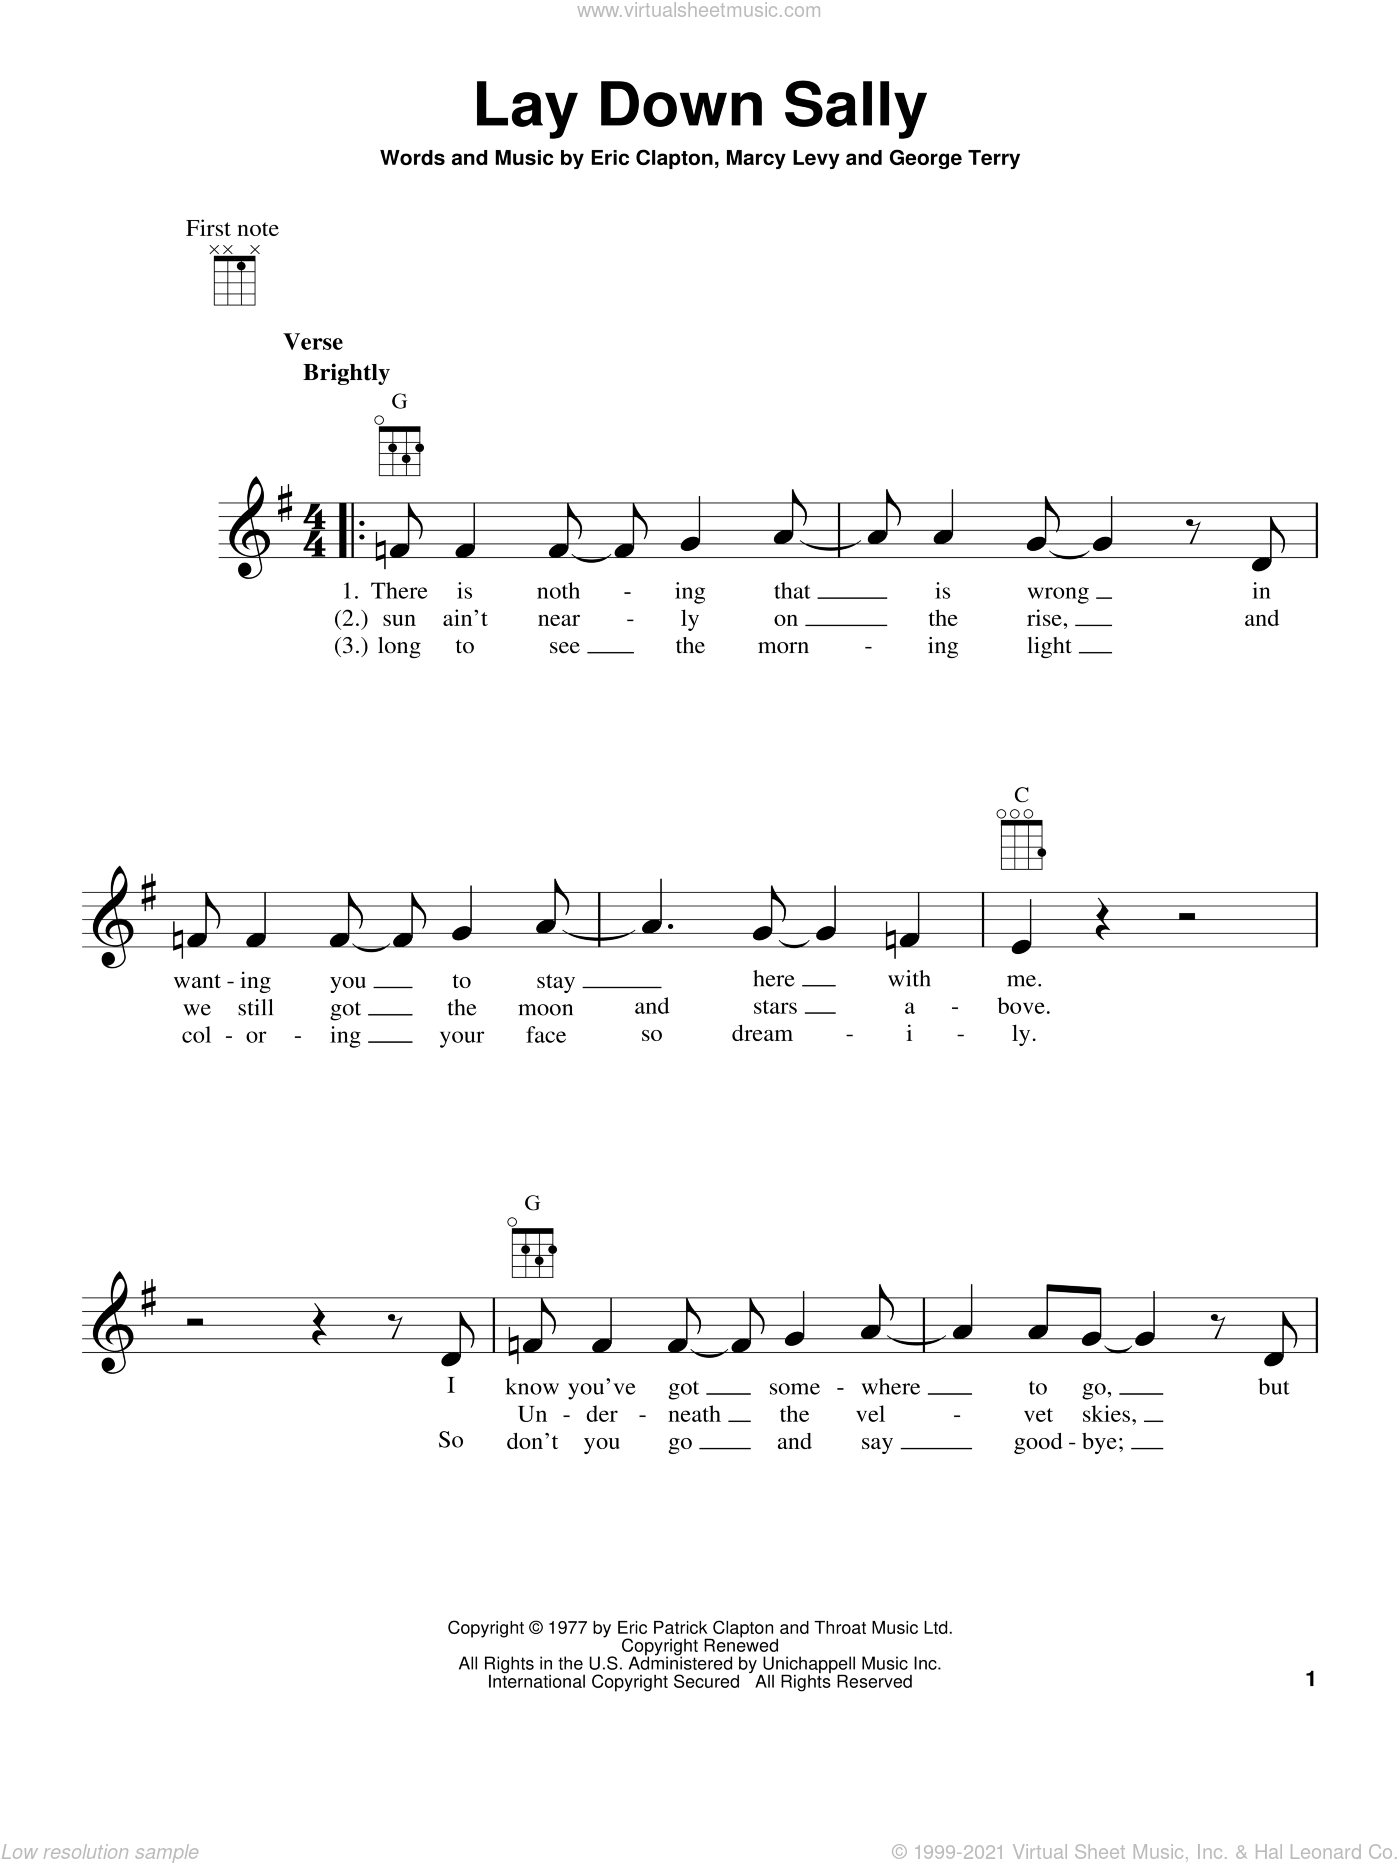 Lay Down Sally sheet music for ukulele by Marcy Levy